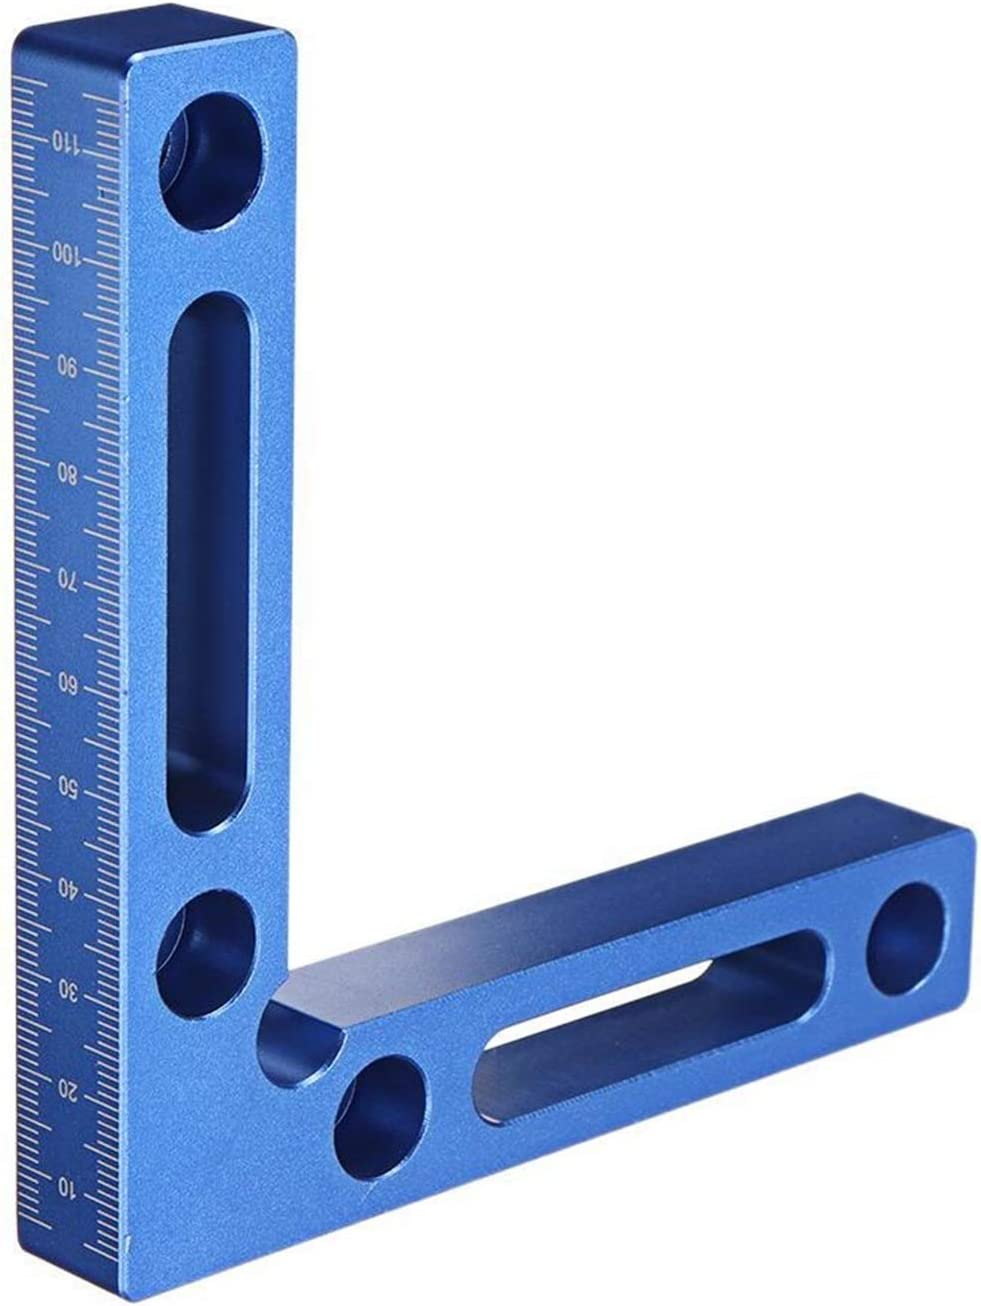 KJBGS High Atlanta Mall safety Precision 90 Degree Angle Right L-Shaped Woodworking